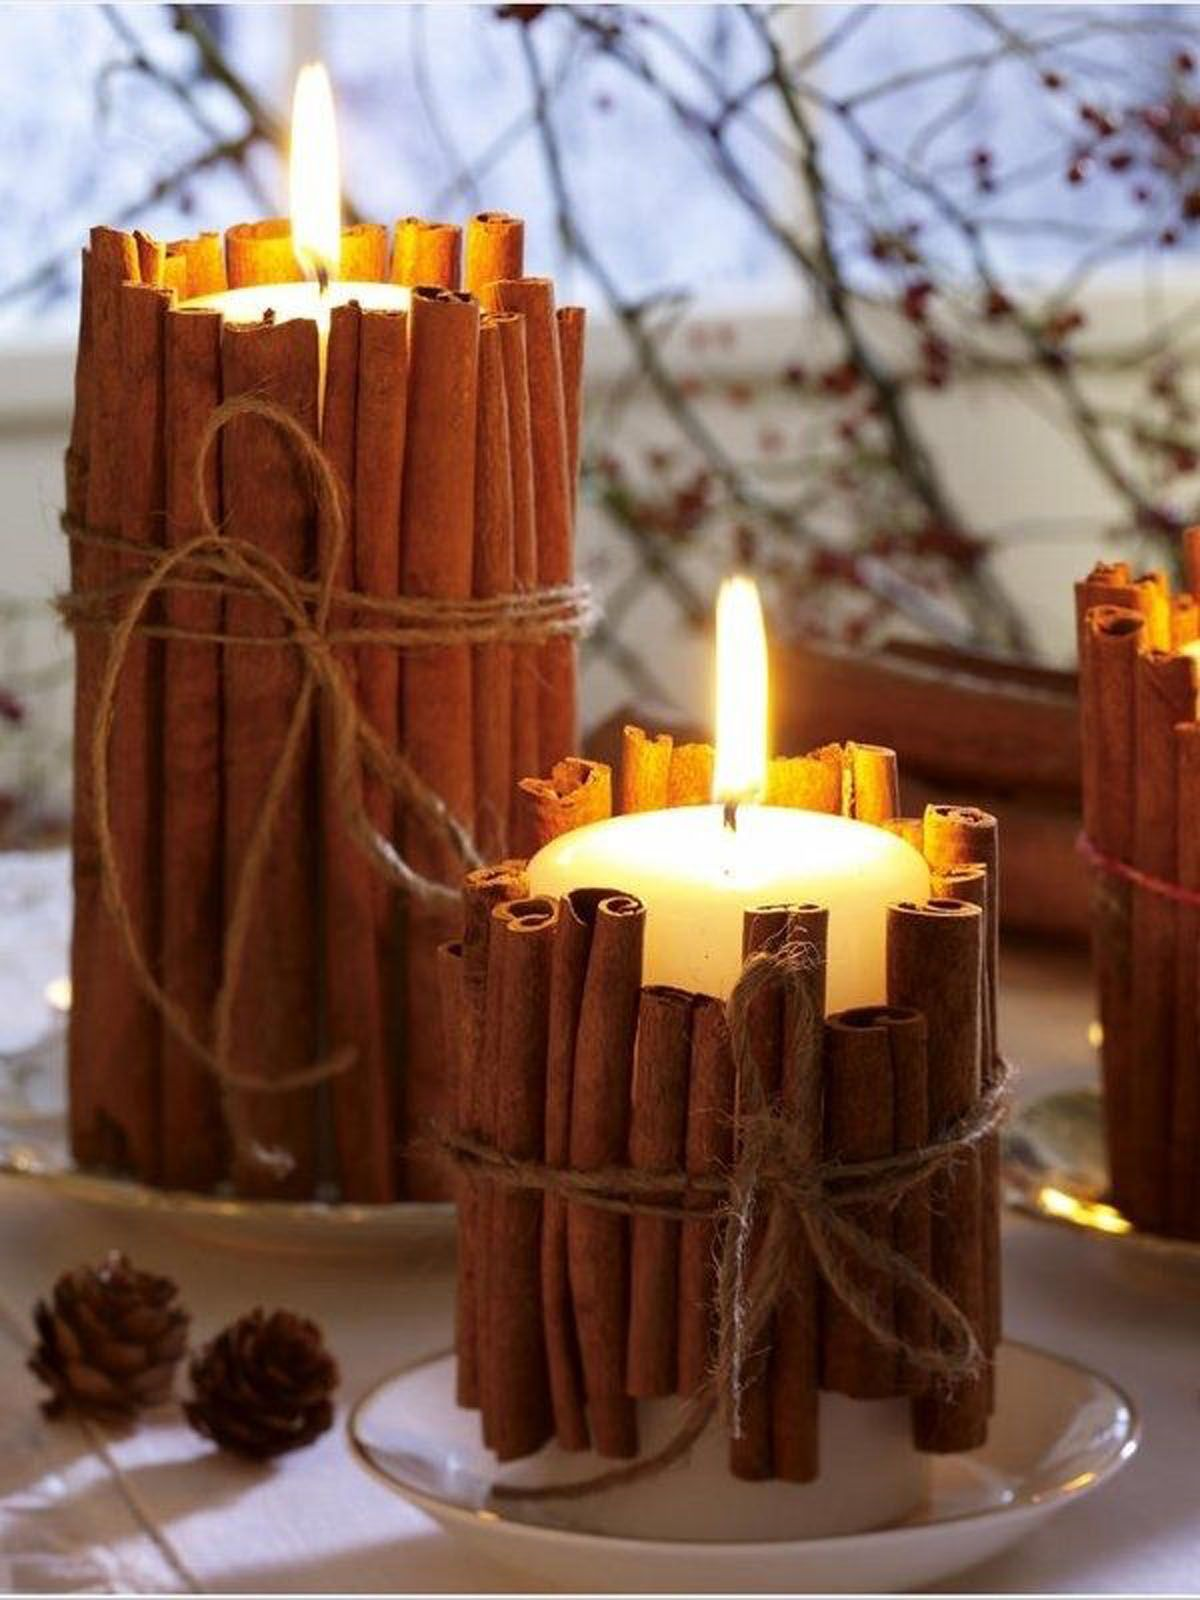 Cinnamon sticks for crafts - 28 Fancy Diy Fall Craft Ideas To Bring Autumn To Your Home